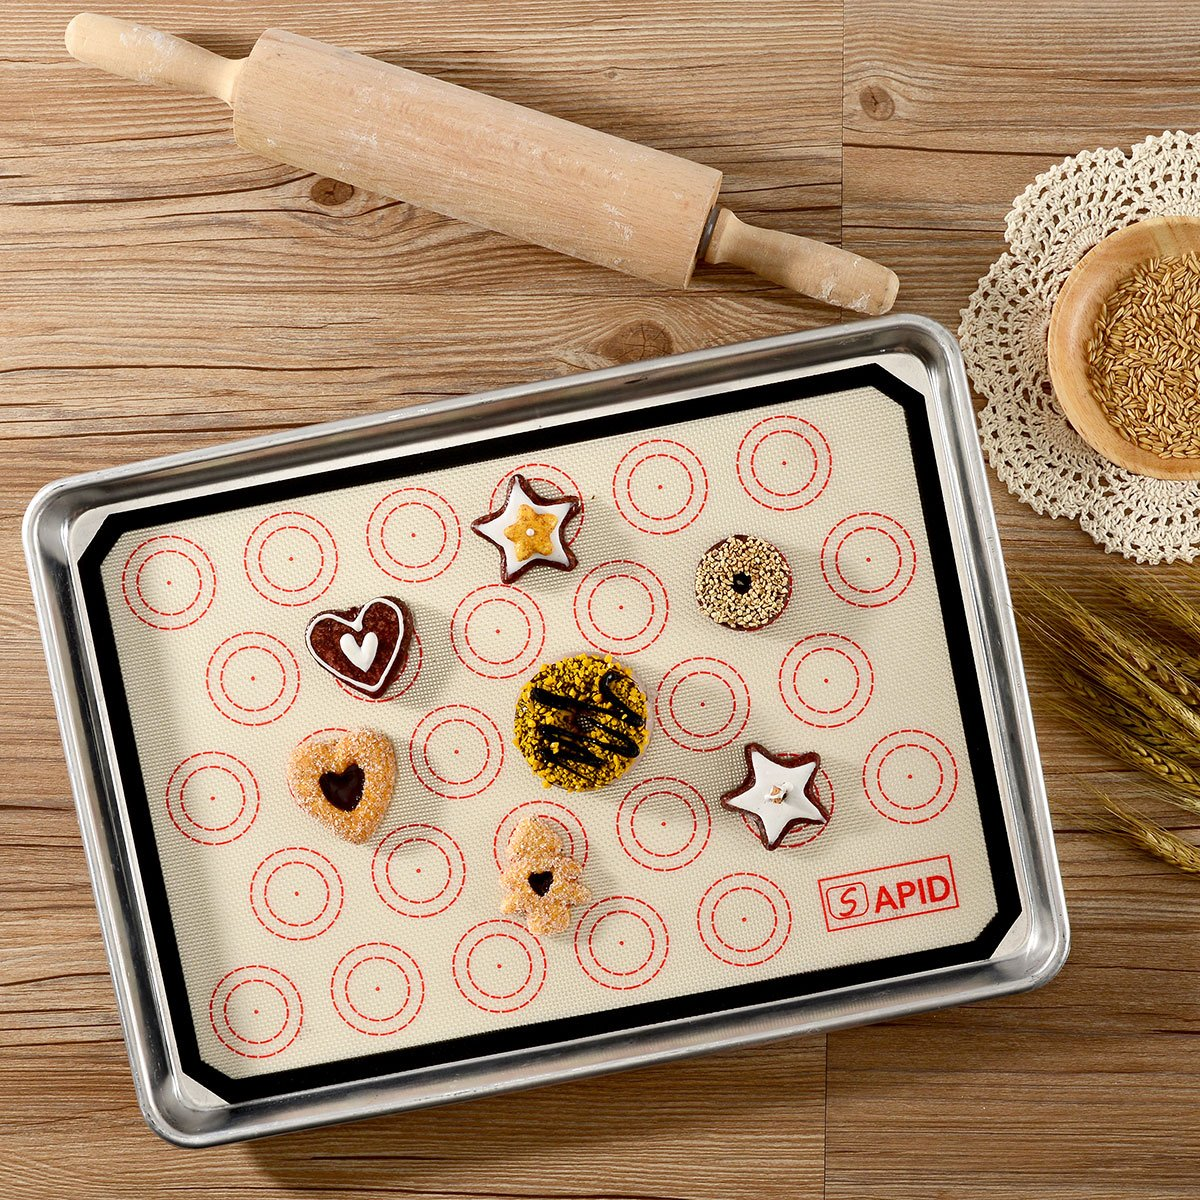 Silicone Baking Mat Macaron Non-stick Silicon Cookie Half Sheet 3 Pack for Macaroon,Cake,Bread and Pizza Making By Sapid,16.5 x 11 5//8 Black